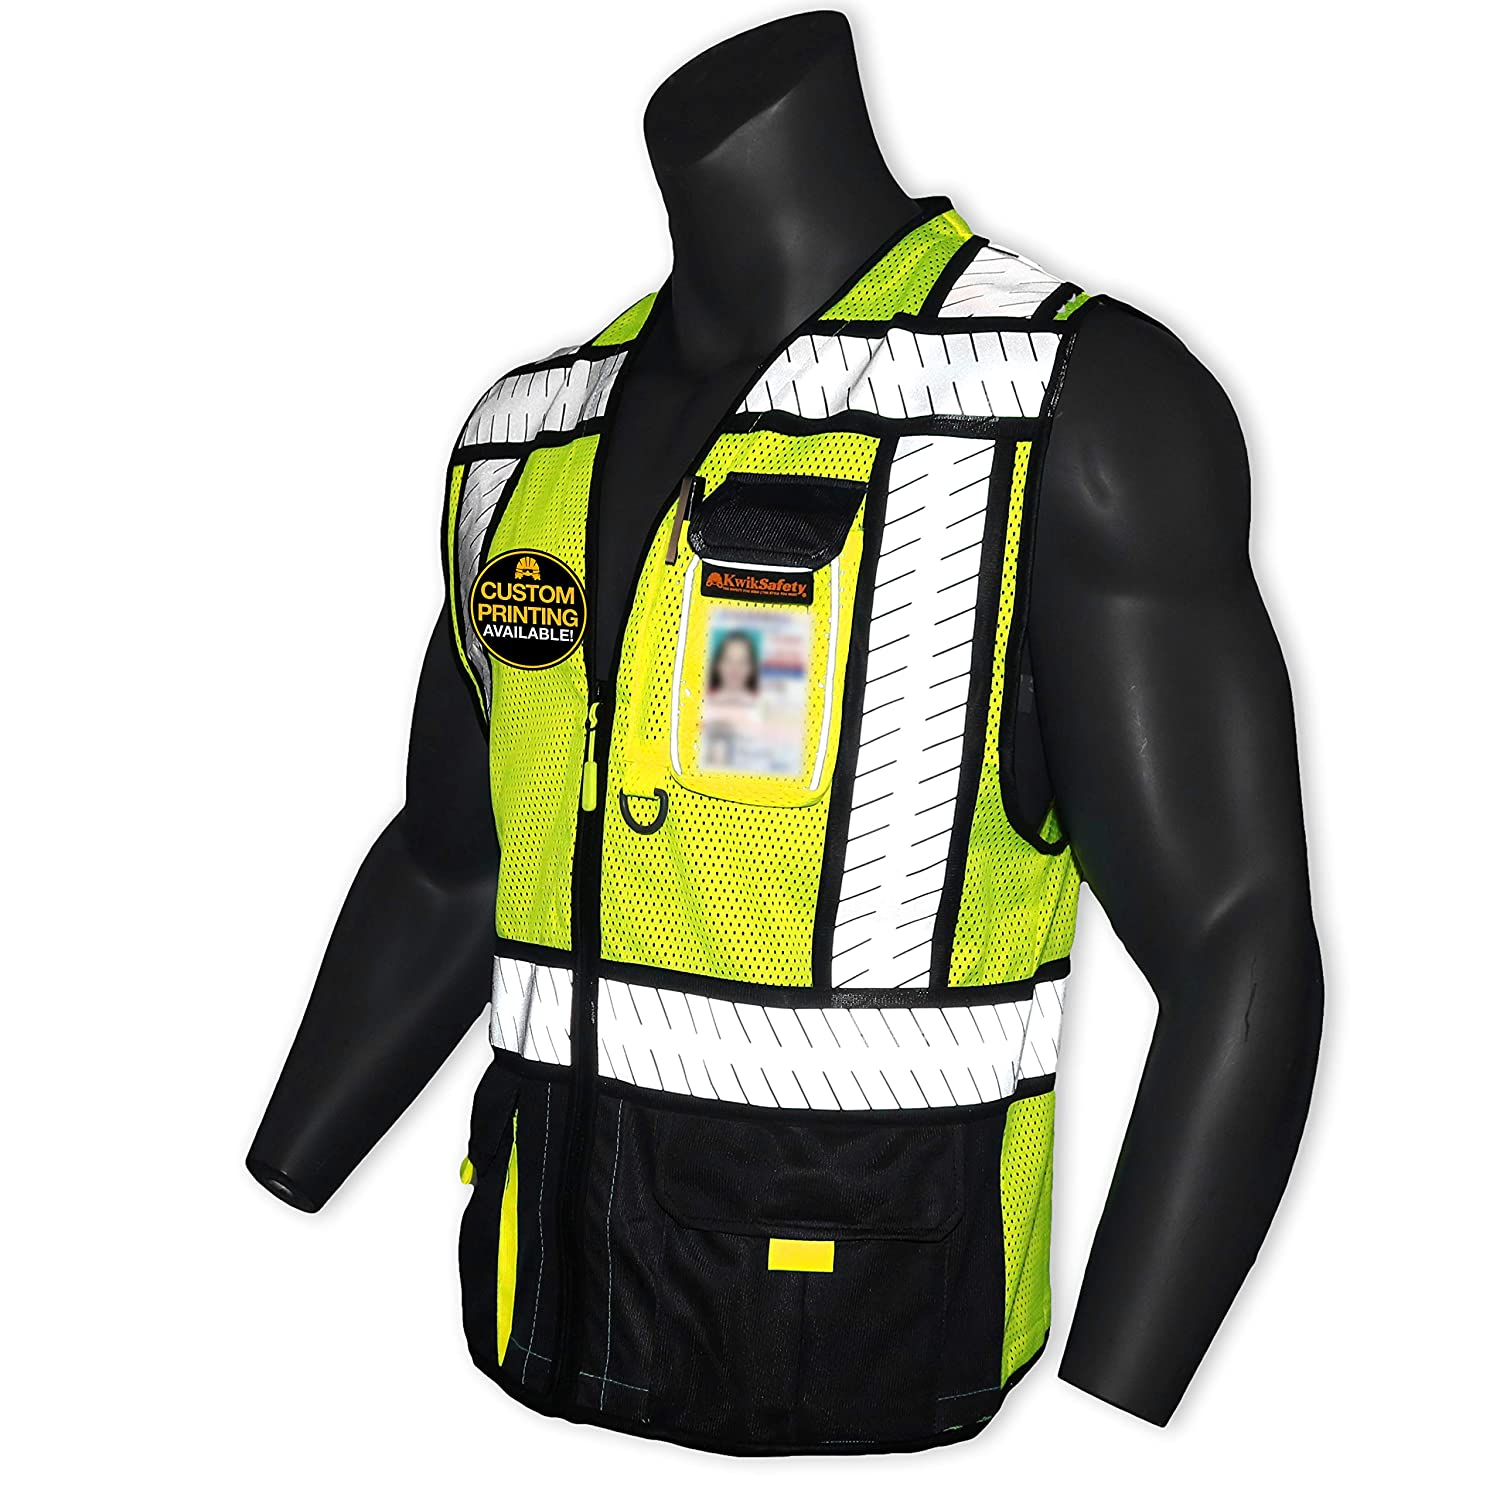 KwikSafety (Charlotte, NC) SPECIALIST (Multi-Use Pockets) Class 2 ANSI High Visibility Reflective Safety Vest Heavy Duty Solid/Mesh and with zipper HiVis Construction Surveyor Work Mens Black LARGE